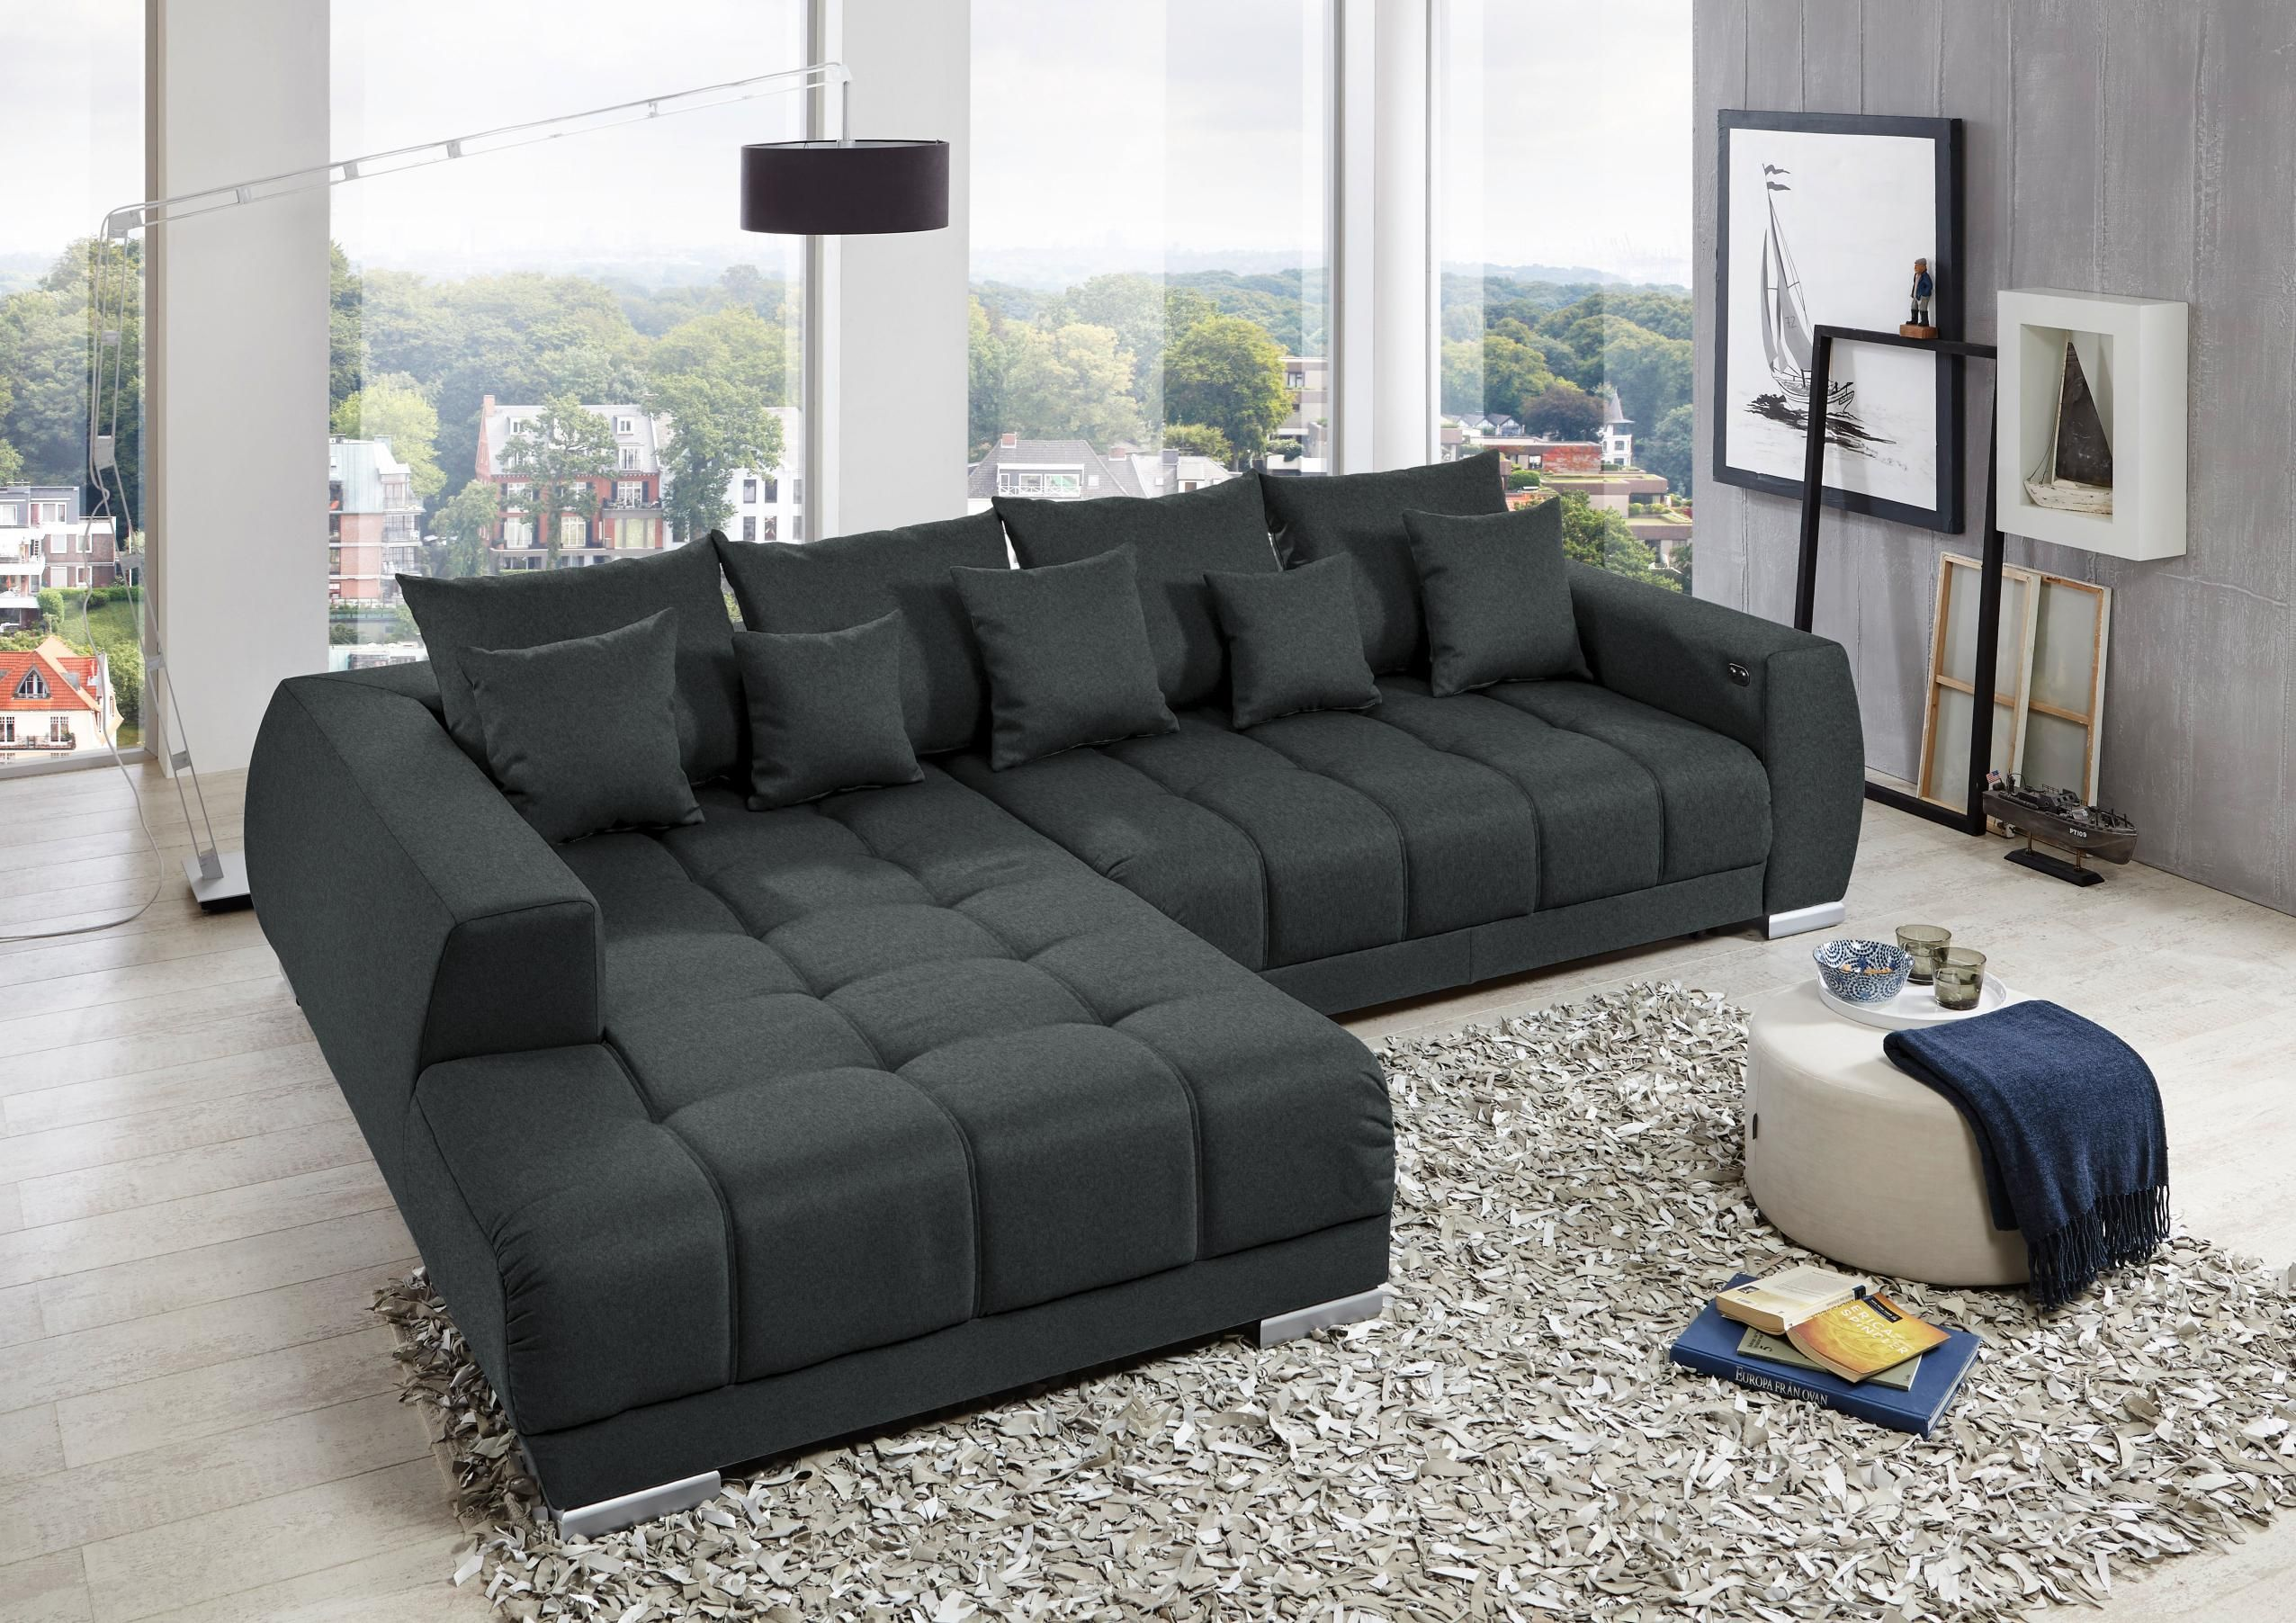 Wohnlandschaft In Grau Von Carryhome Grey Sectional Sofa Grey Sofa Living Room Gray Sofa Living